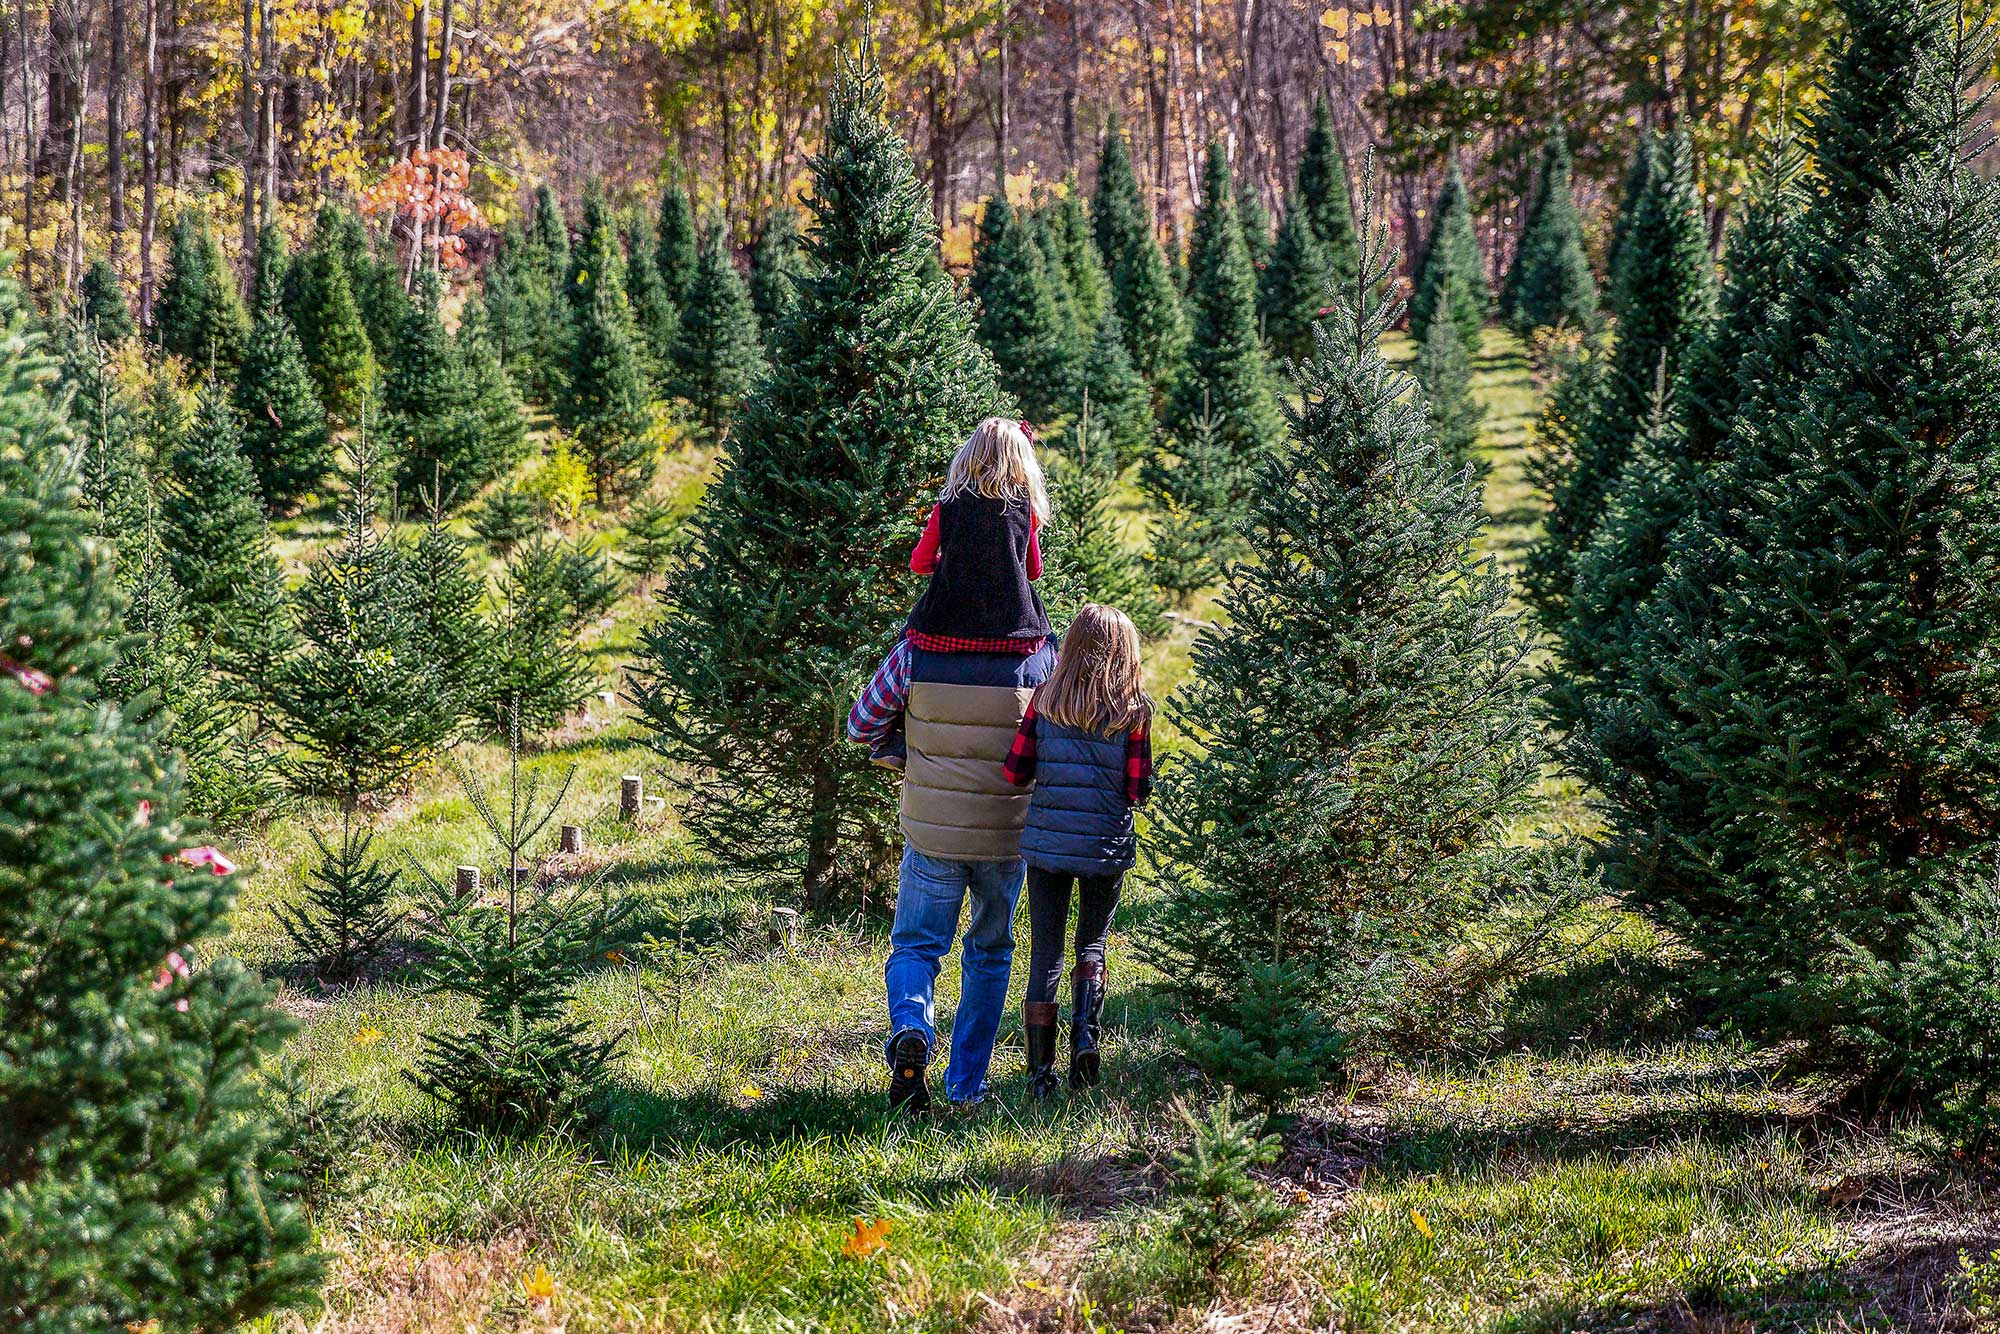 Christmas trees: The sustainability of real vs. artificial ...